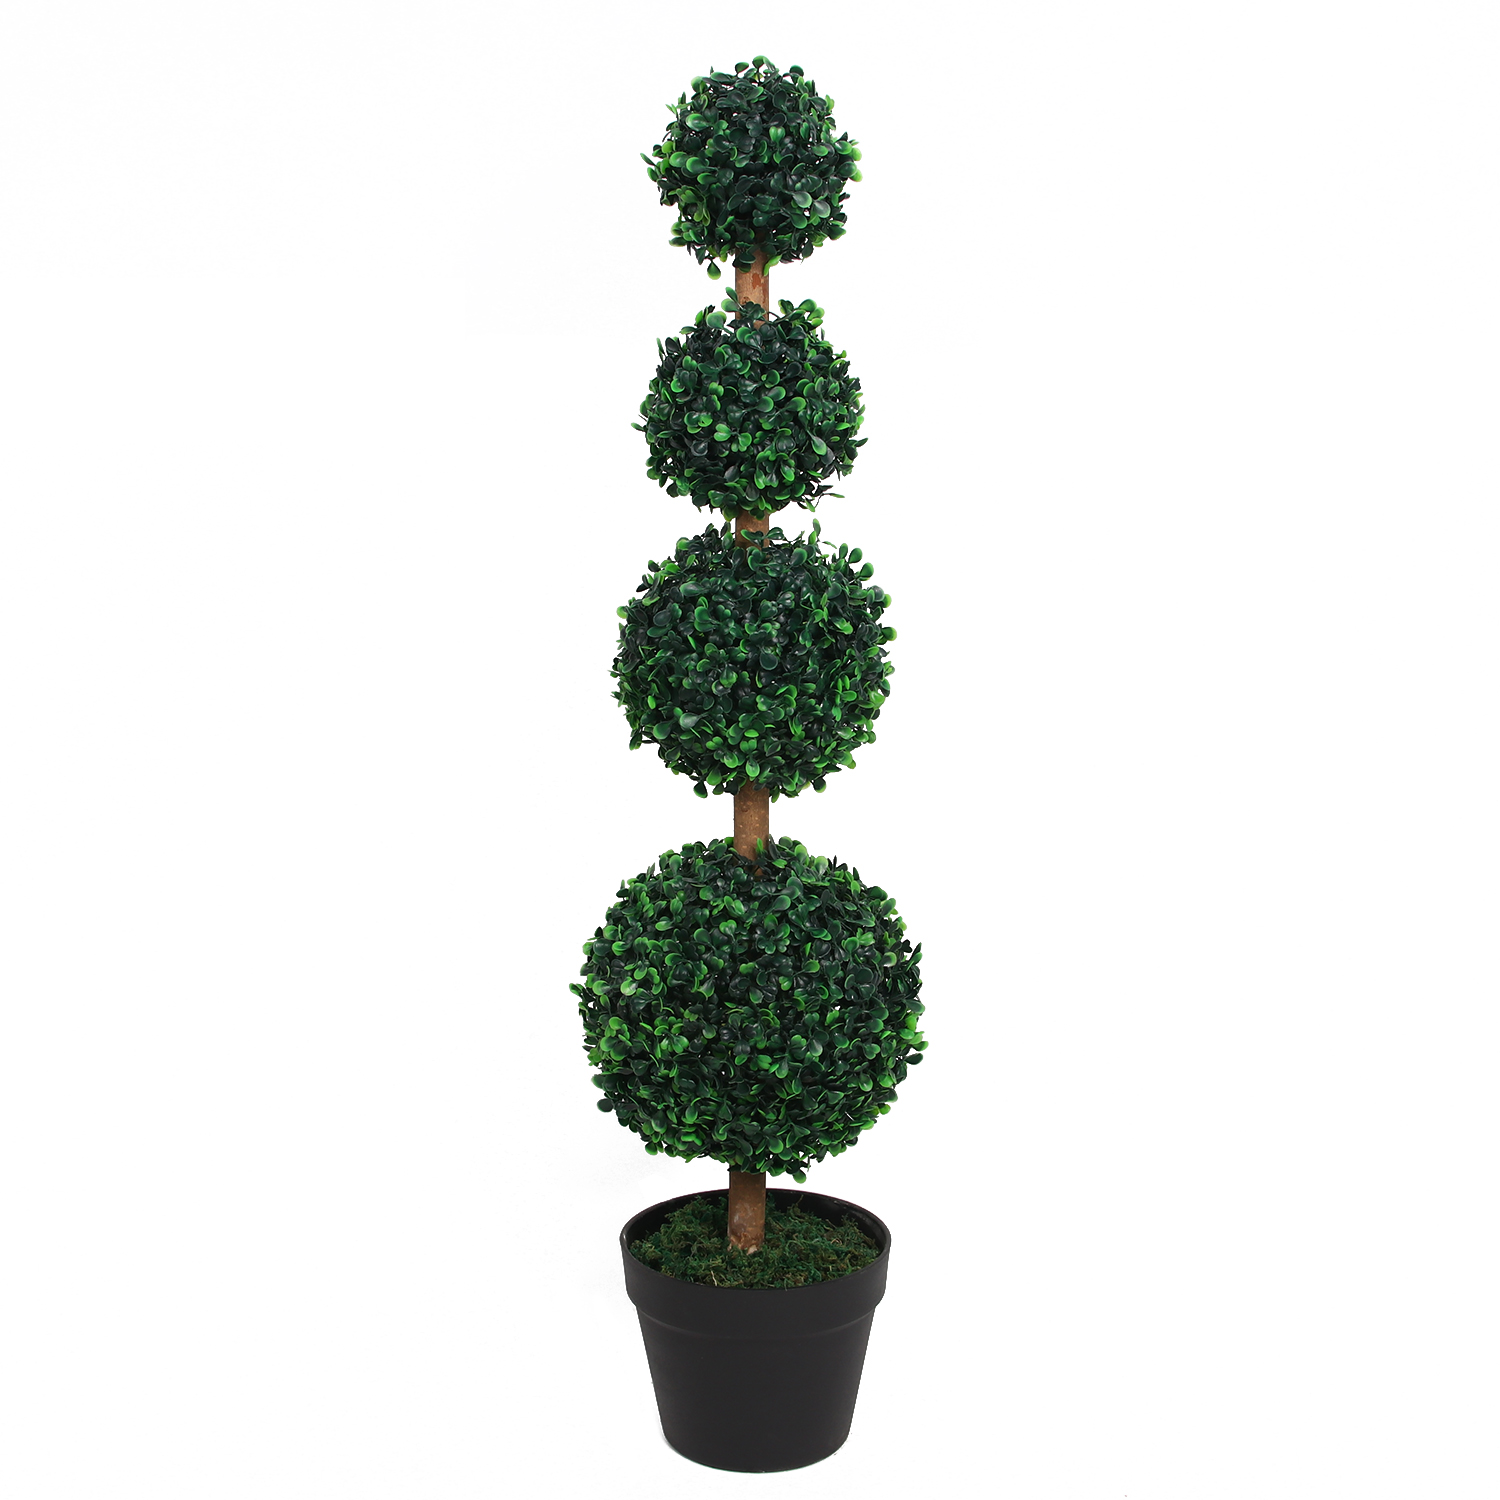 Artificial Topiary Plants Cheaper Than Retail Price Buy Clothing Accessories And Lifestyle Products For Women Men